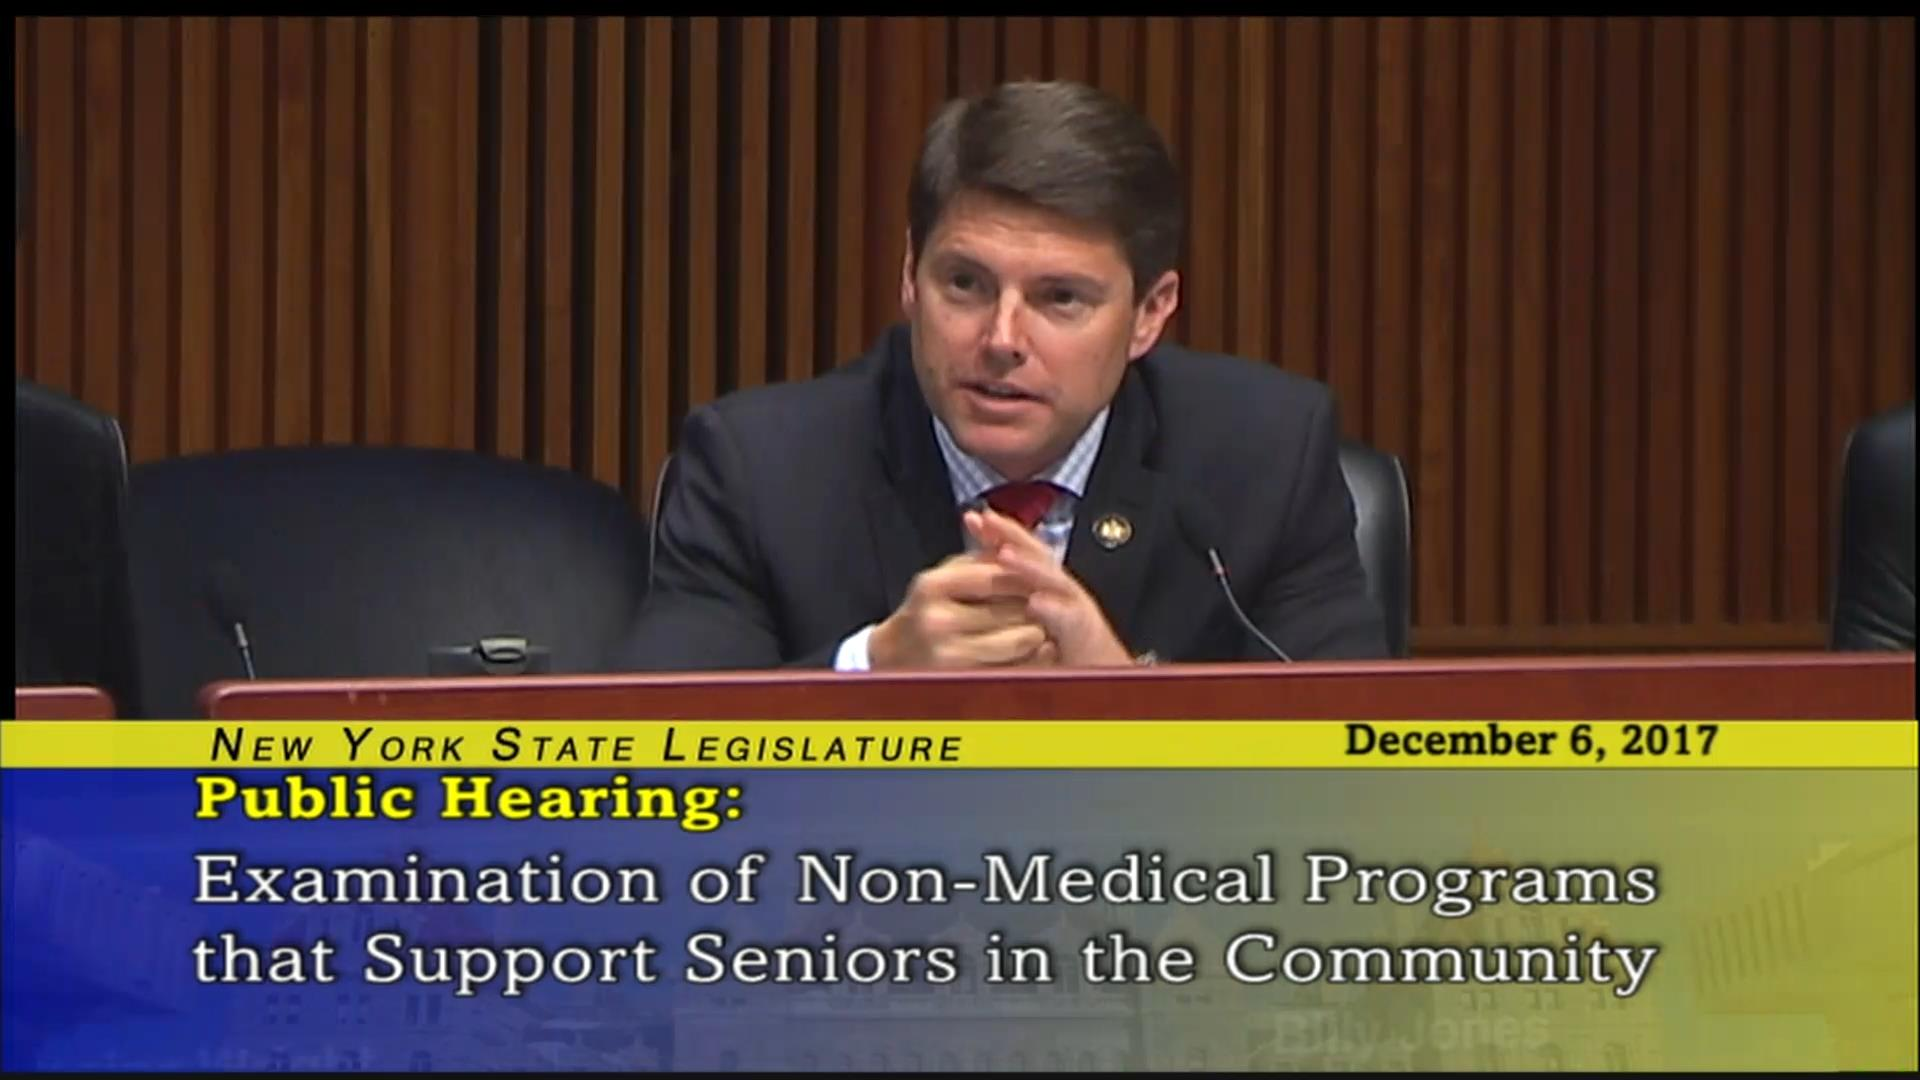 Assemblyman Jones Speaks on Non-Medical Programs